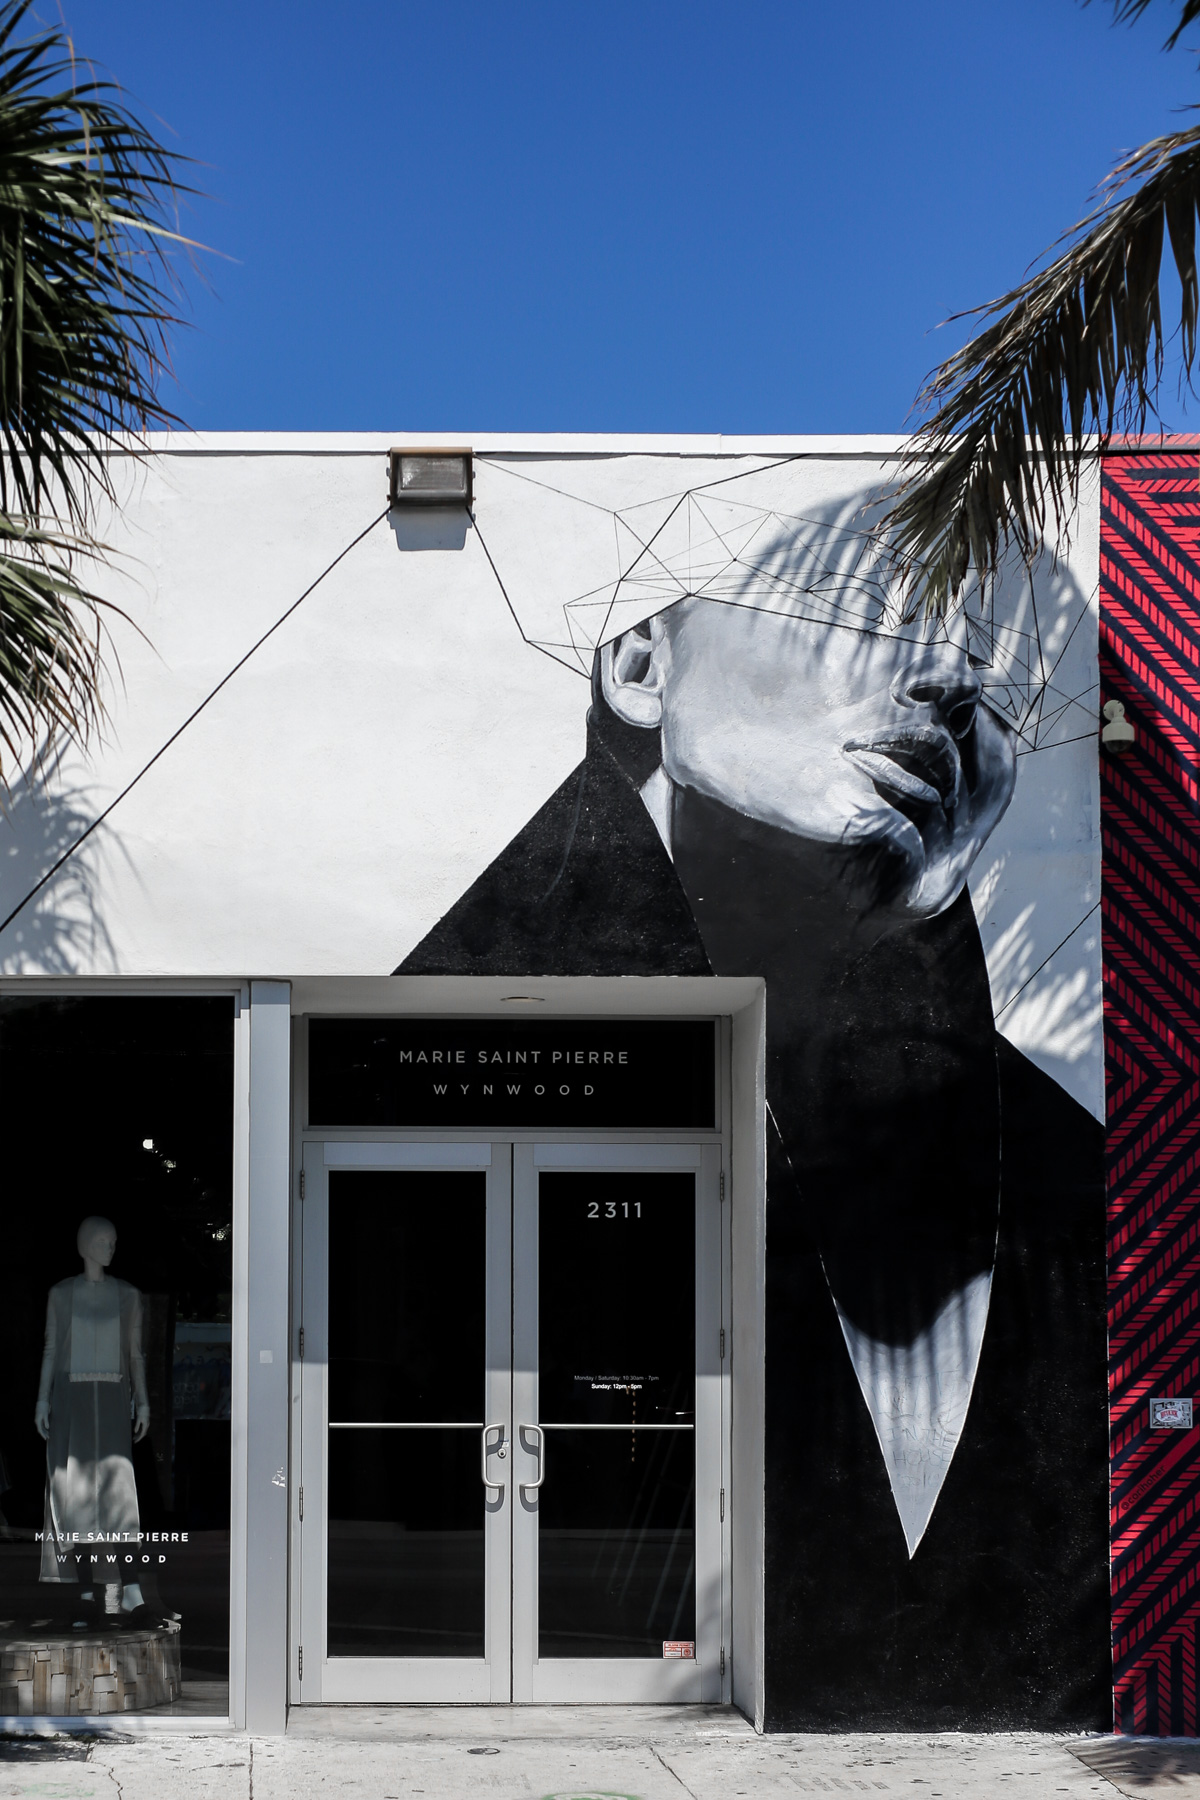 Marie Saint Pierre Store at Wynwood, Miami